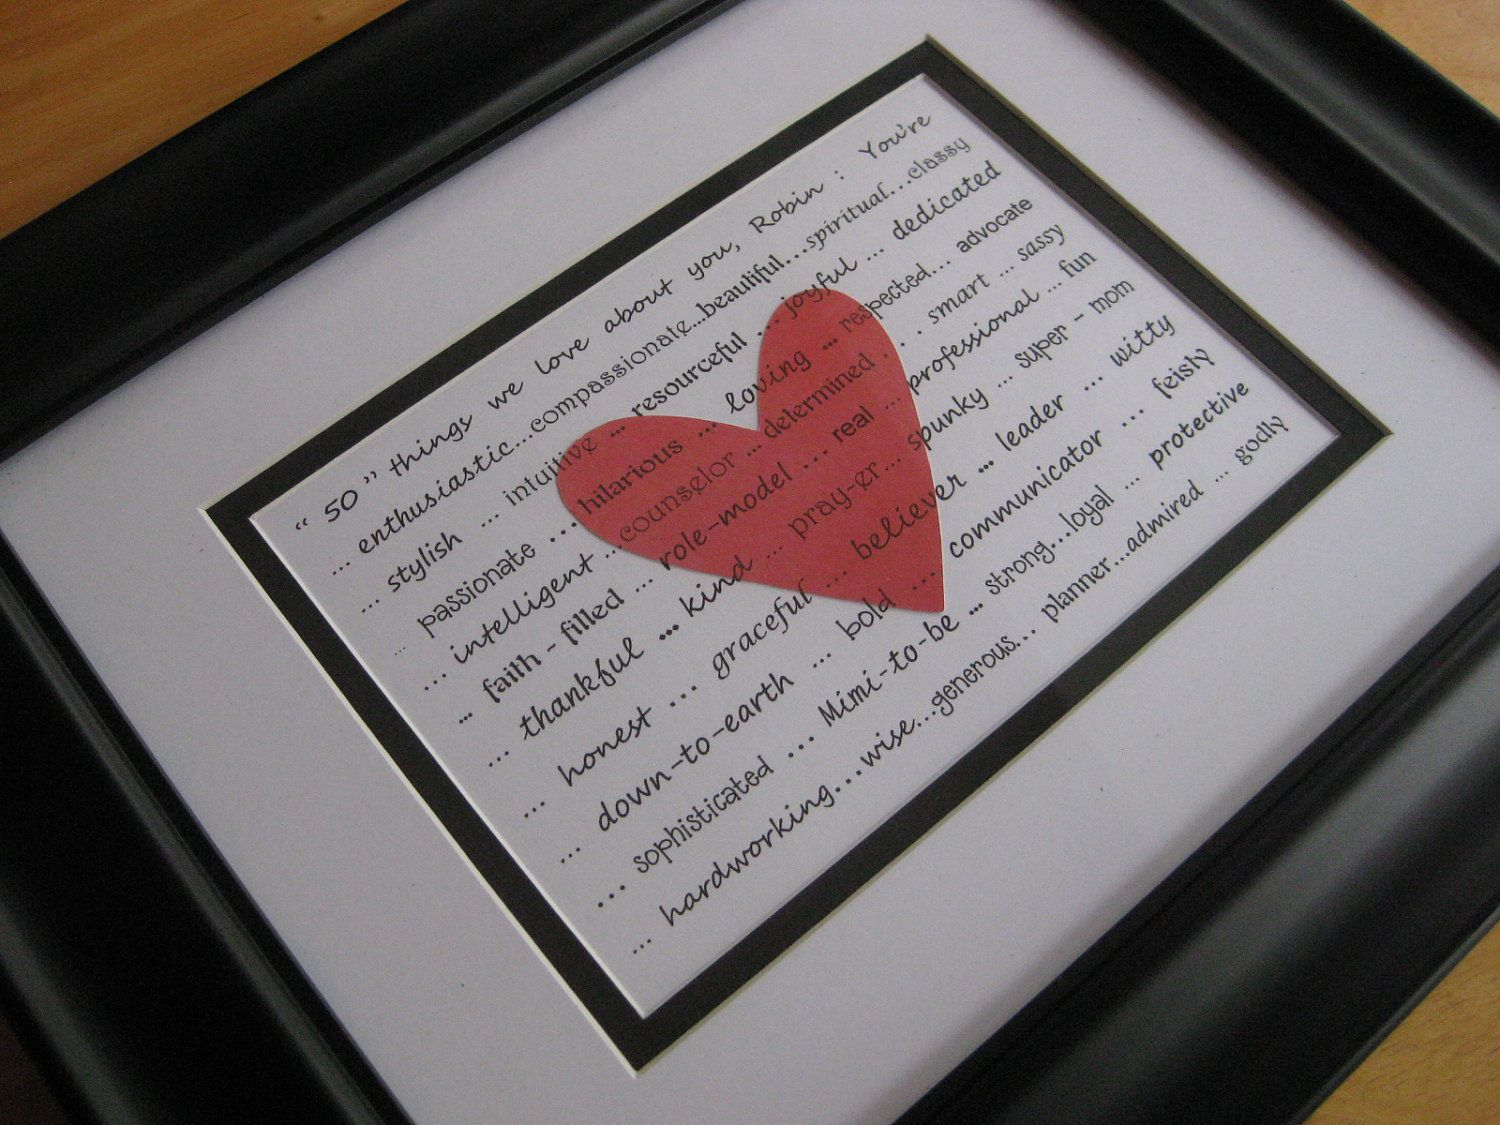 40th Wedding Anniversary Gifts For Friends: Personalized Friend Gift, 5 X 7 Print, With Your Words